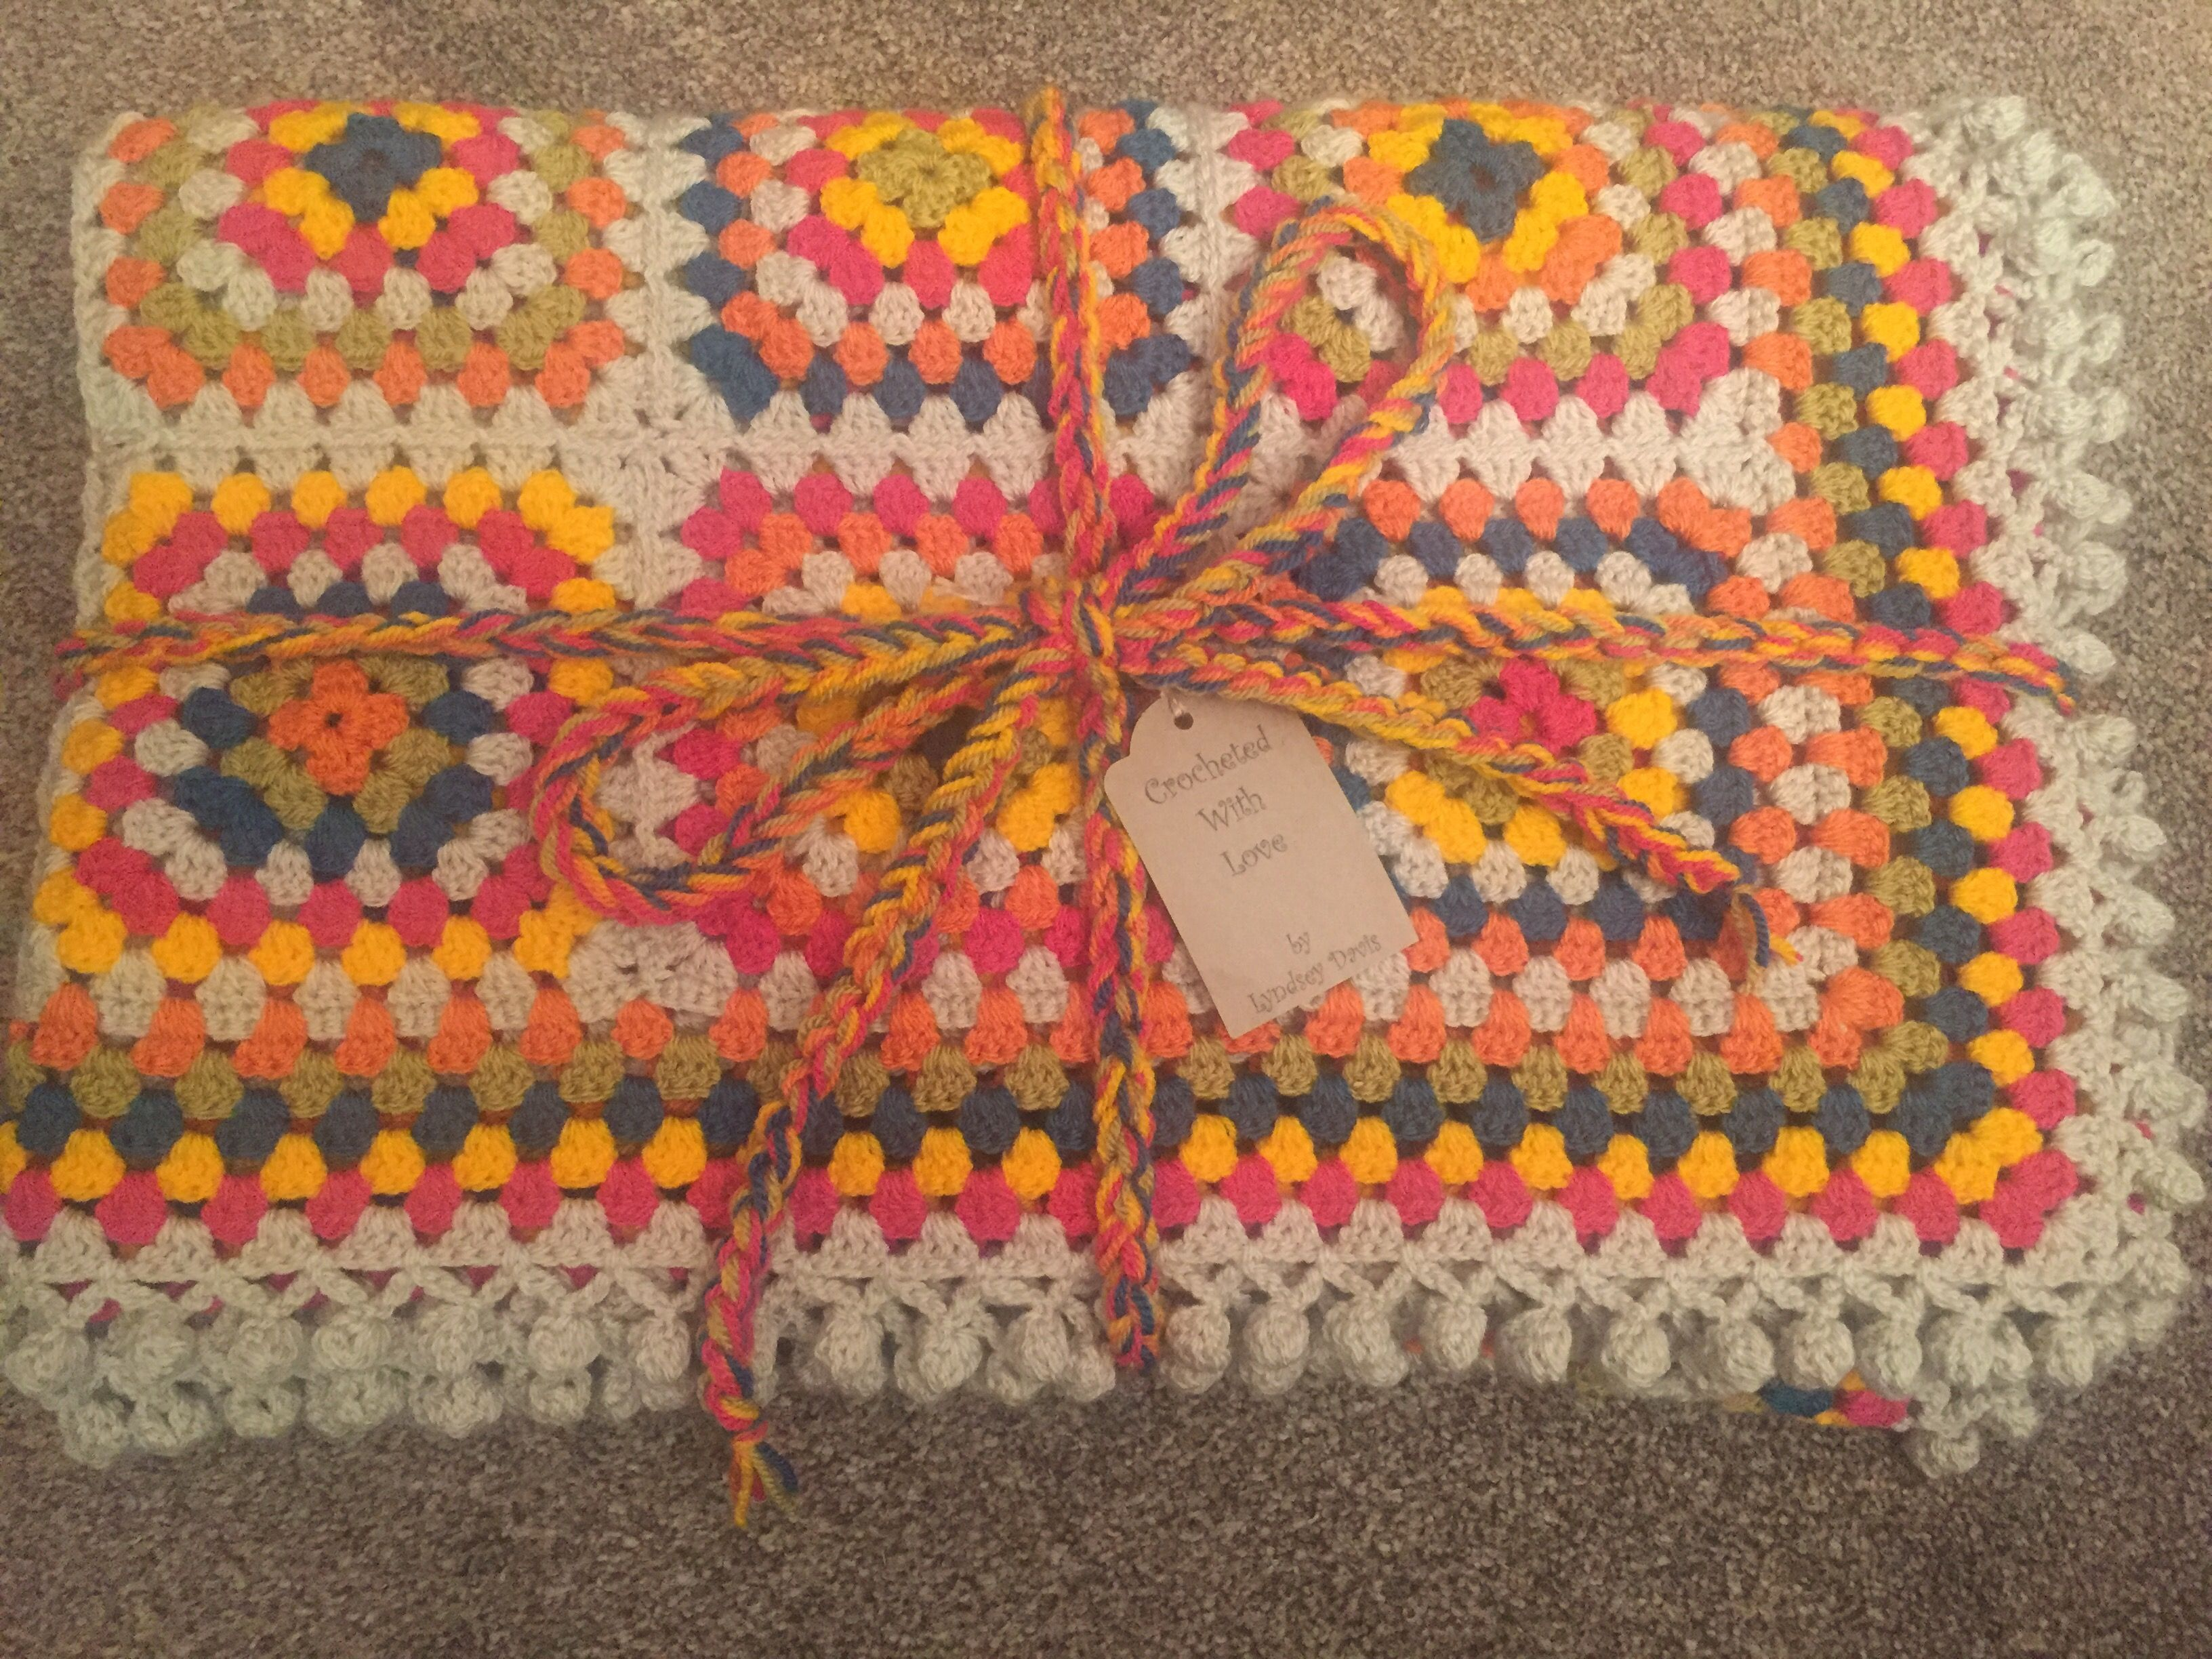 Large granny square blanket with Pom Pom edging that I made for Samantha's camper van